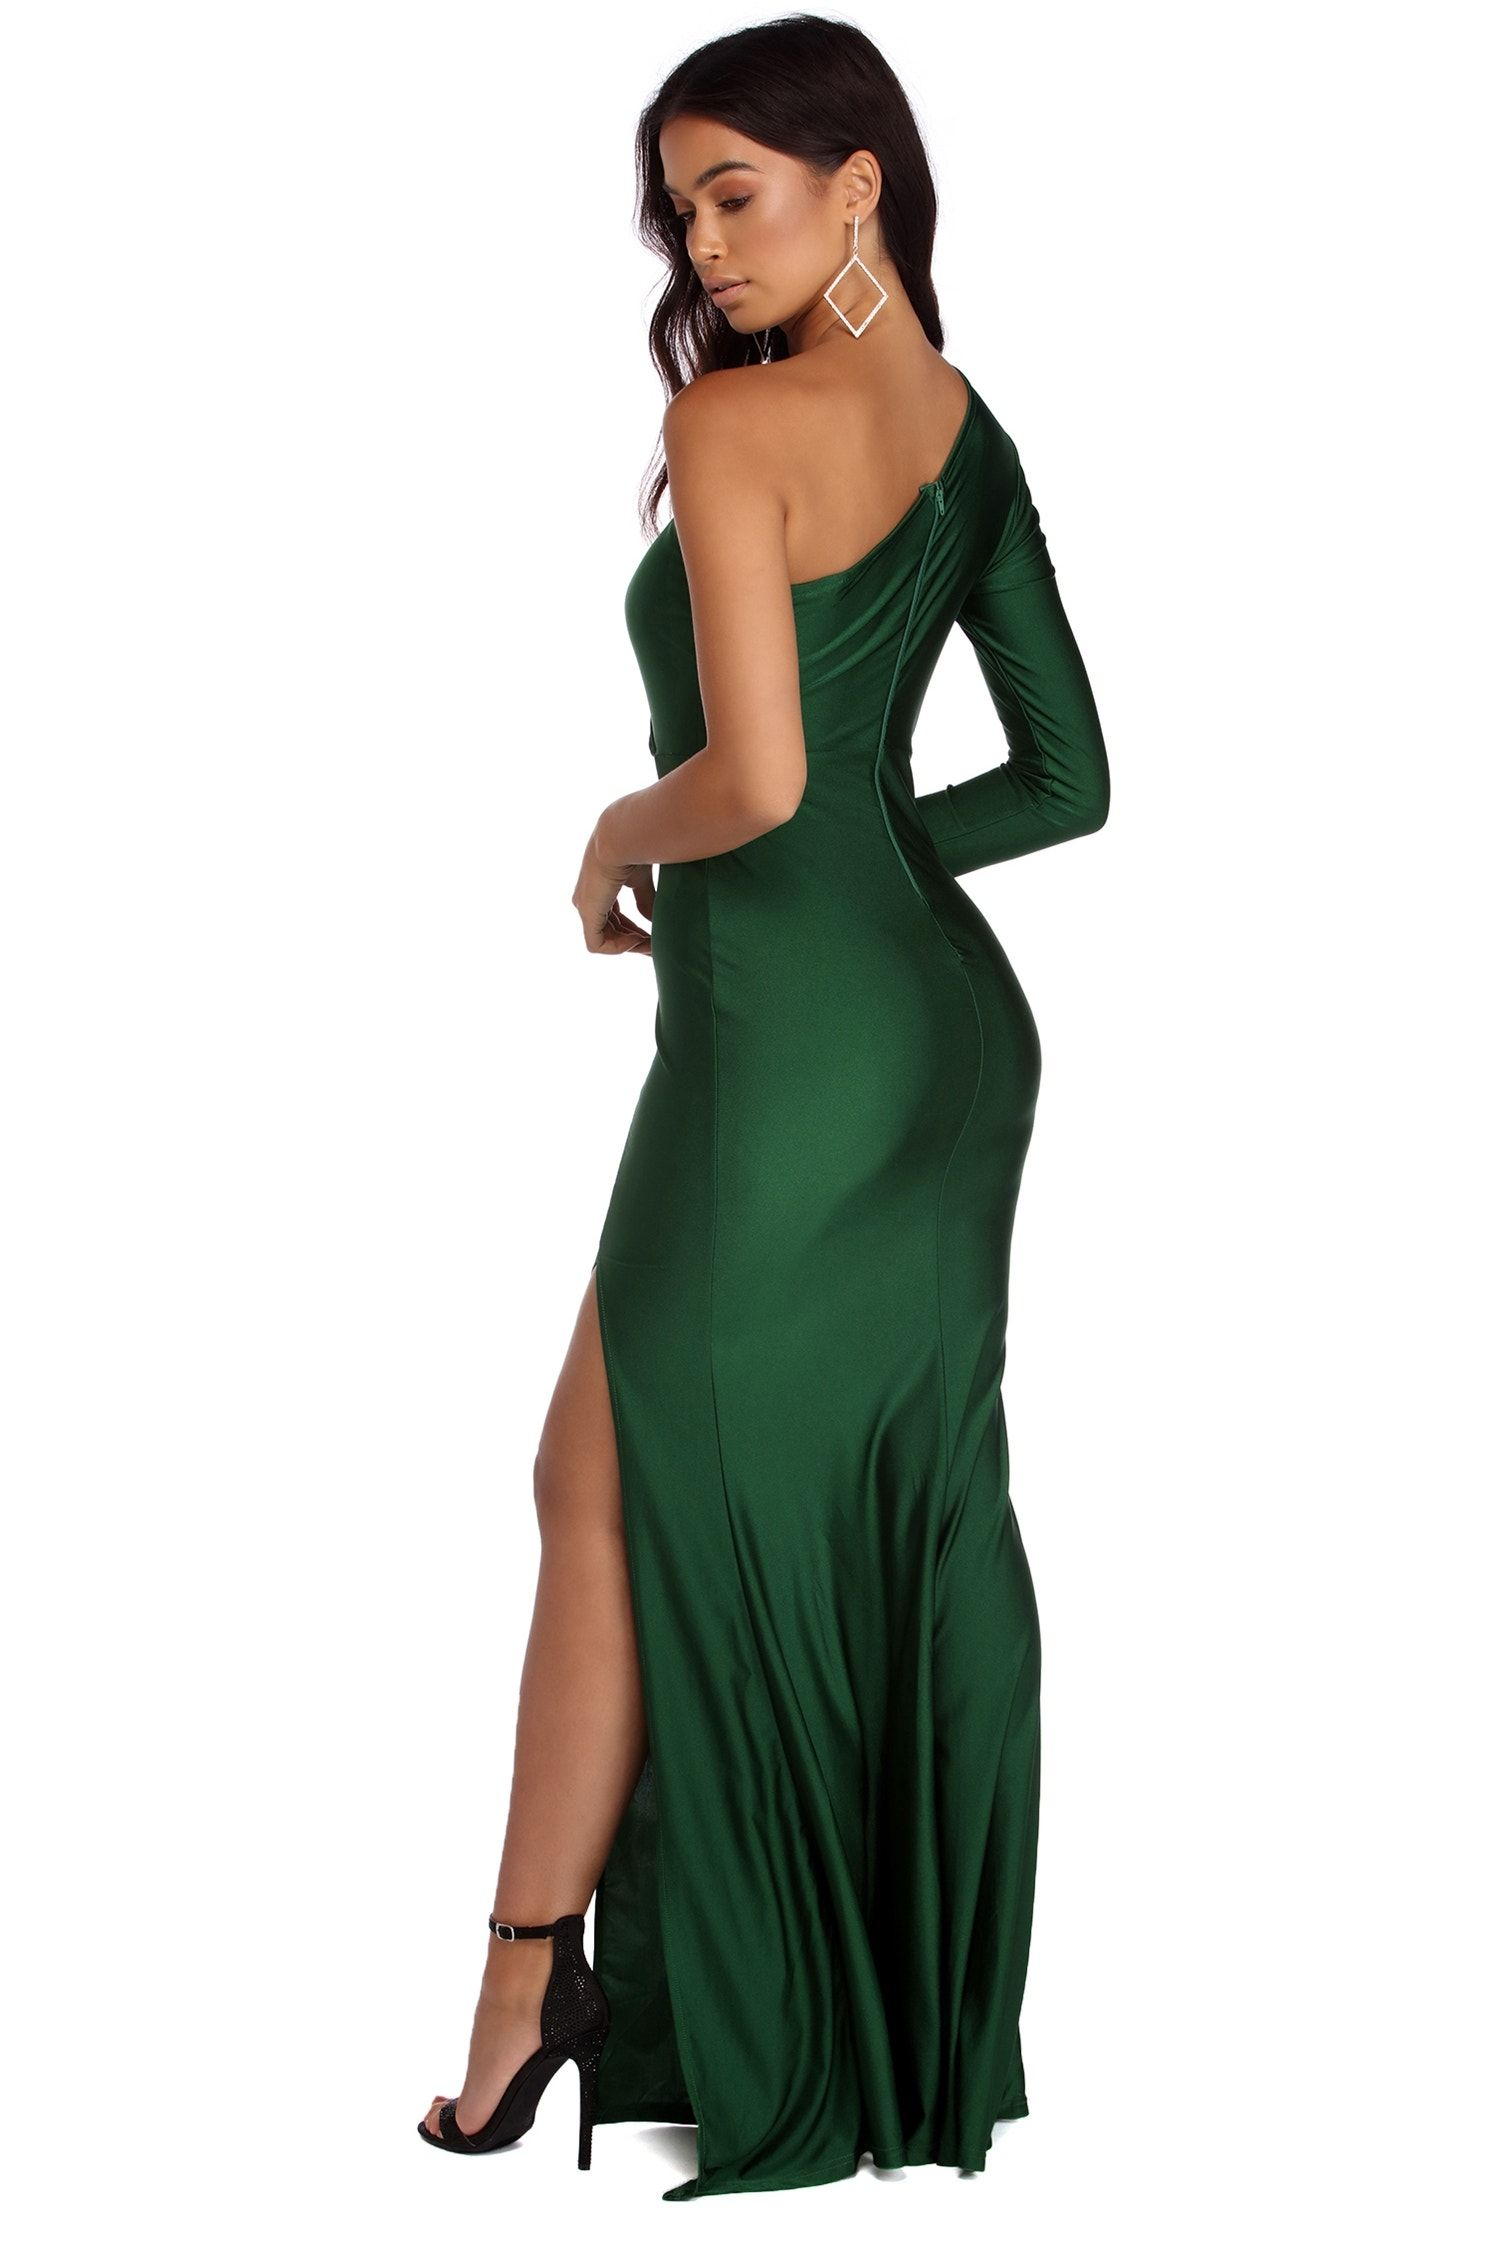 Windsorstore Annalise Formal One Shoulder Dress 050025561 Rona Mahal Product Page Https Www Windsor Dresses One Shoulder Dress Formal Dresses Long [ 2247 x 1500 Pixel ]